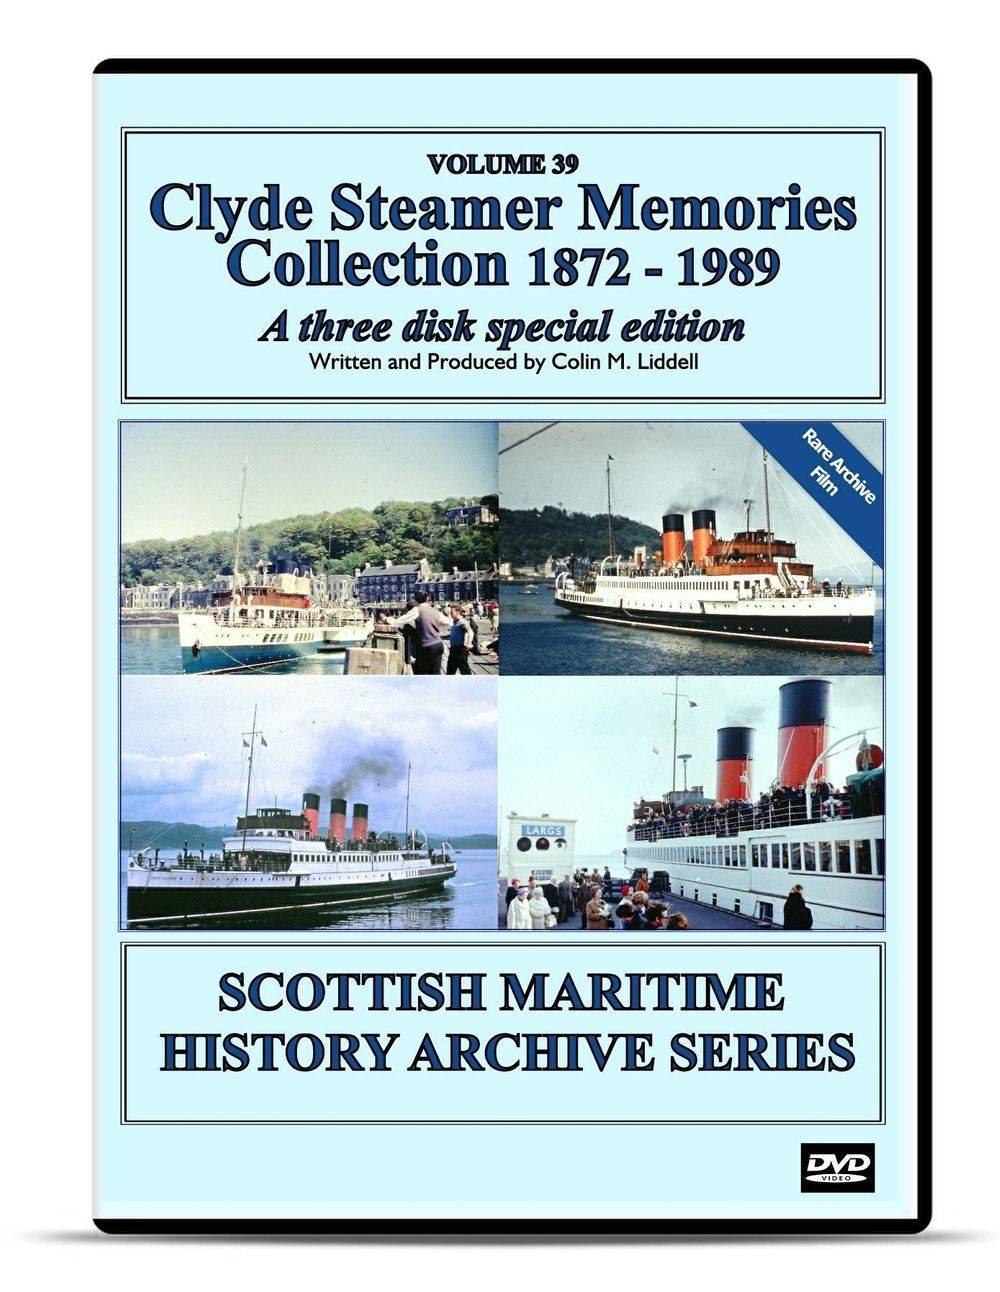 DVD Clyde Paddle Steamer Memories 1949 - 1989 Part 3 Paddle steamer TS Queen Mary II PS Waverley Duchess of Hamilton PS Jeanie Deans